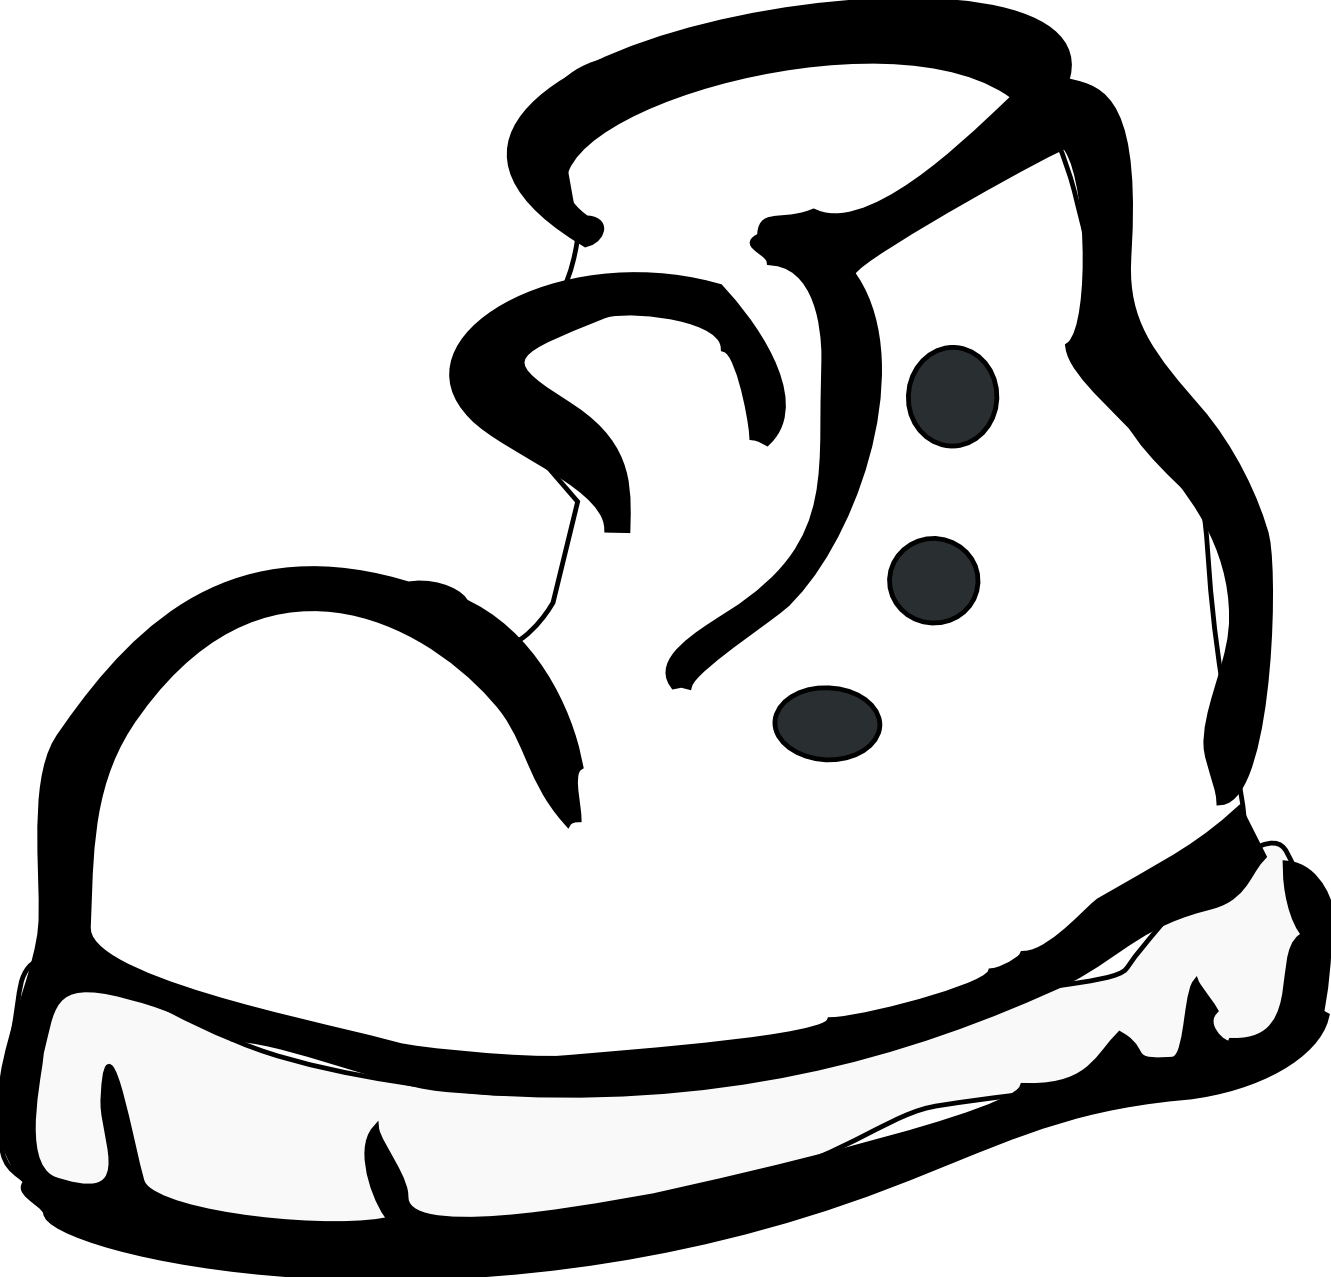 royalty free download Running Shoes Clipart water shoe